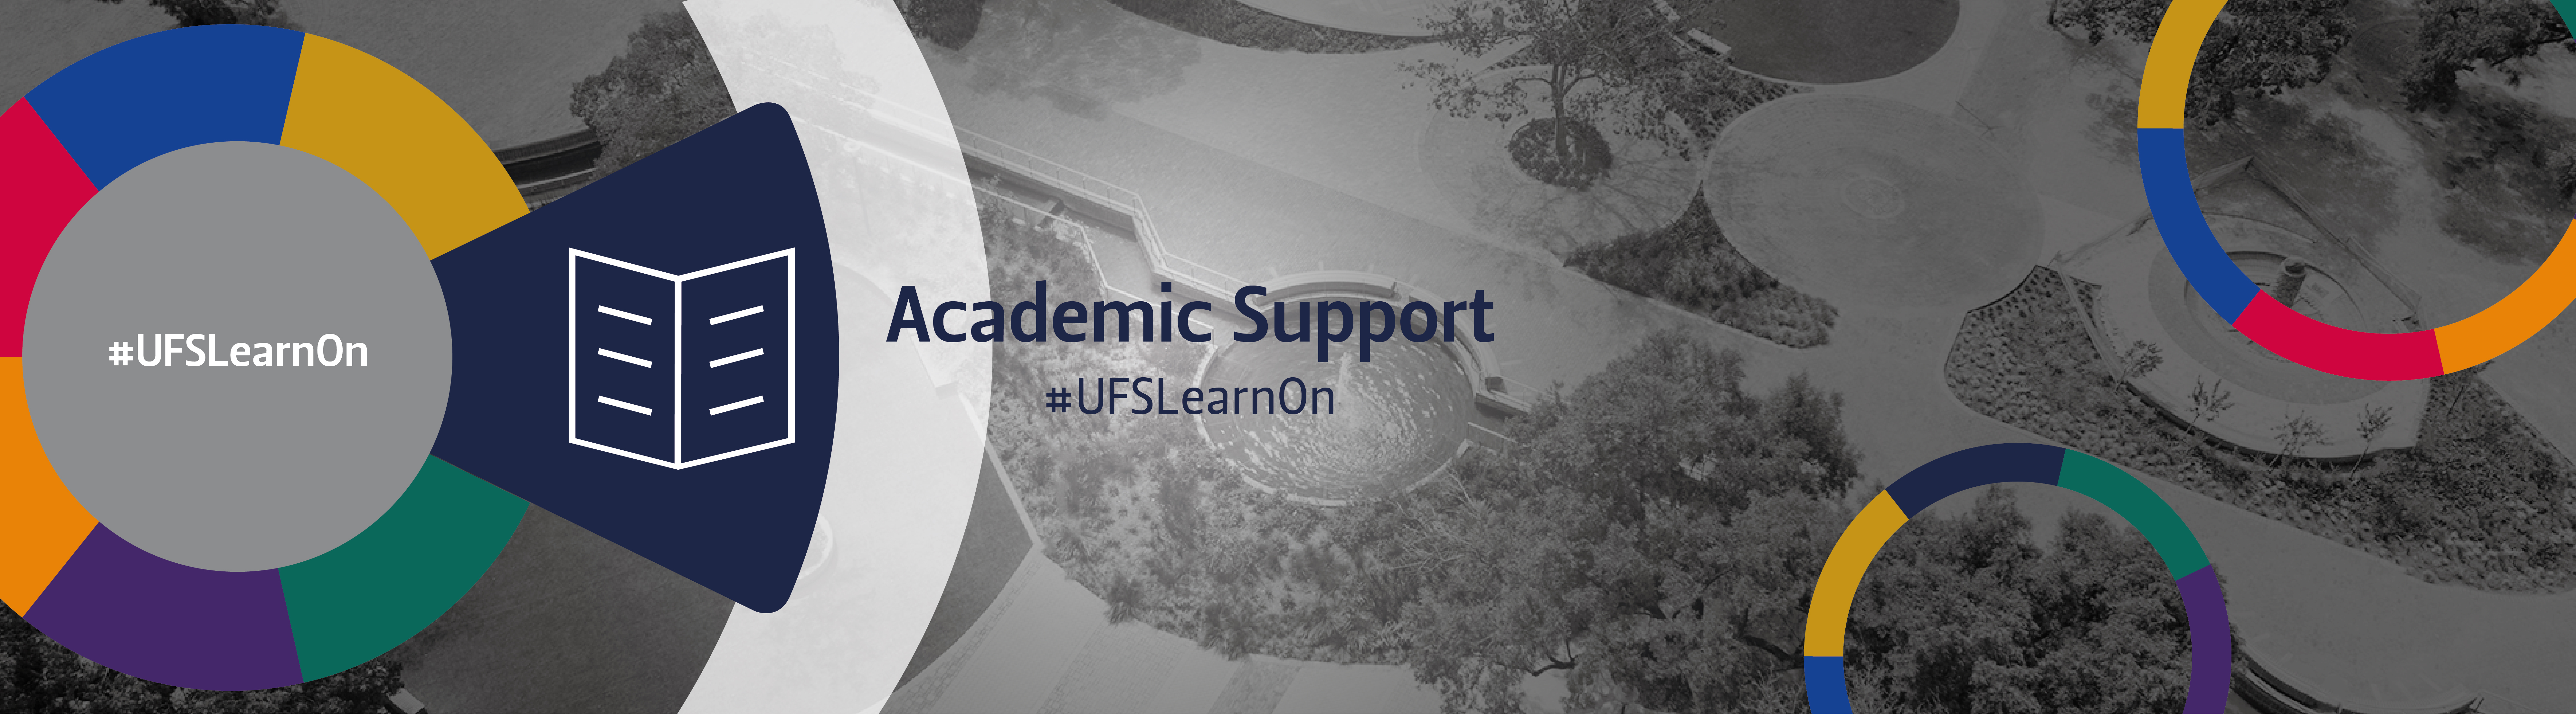 LearnOn Academic Support